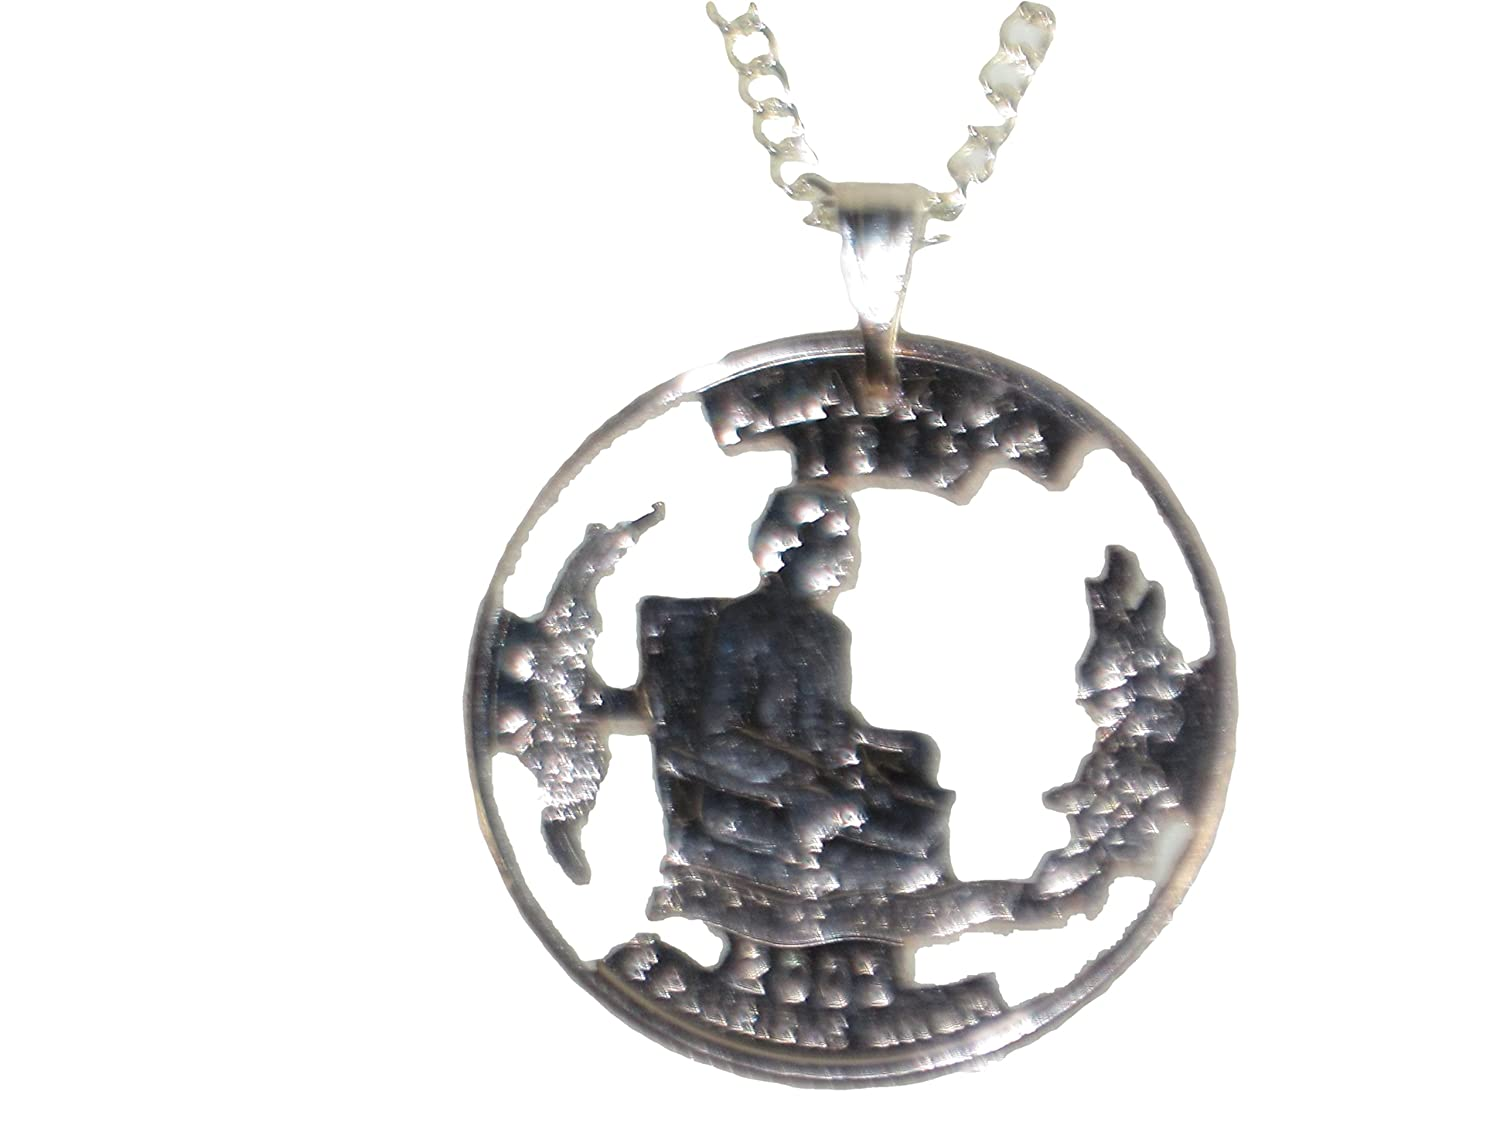 Hand Cut Alabama Quarter Mounted with a Bale and 24 Inch Silver Tone Chain